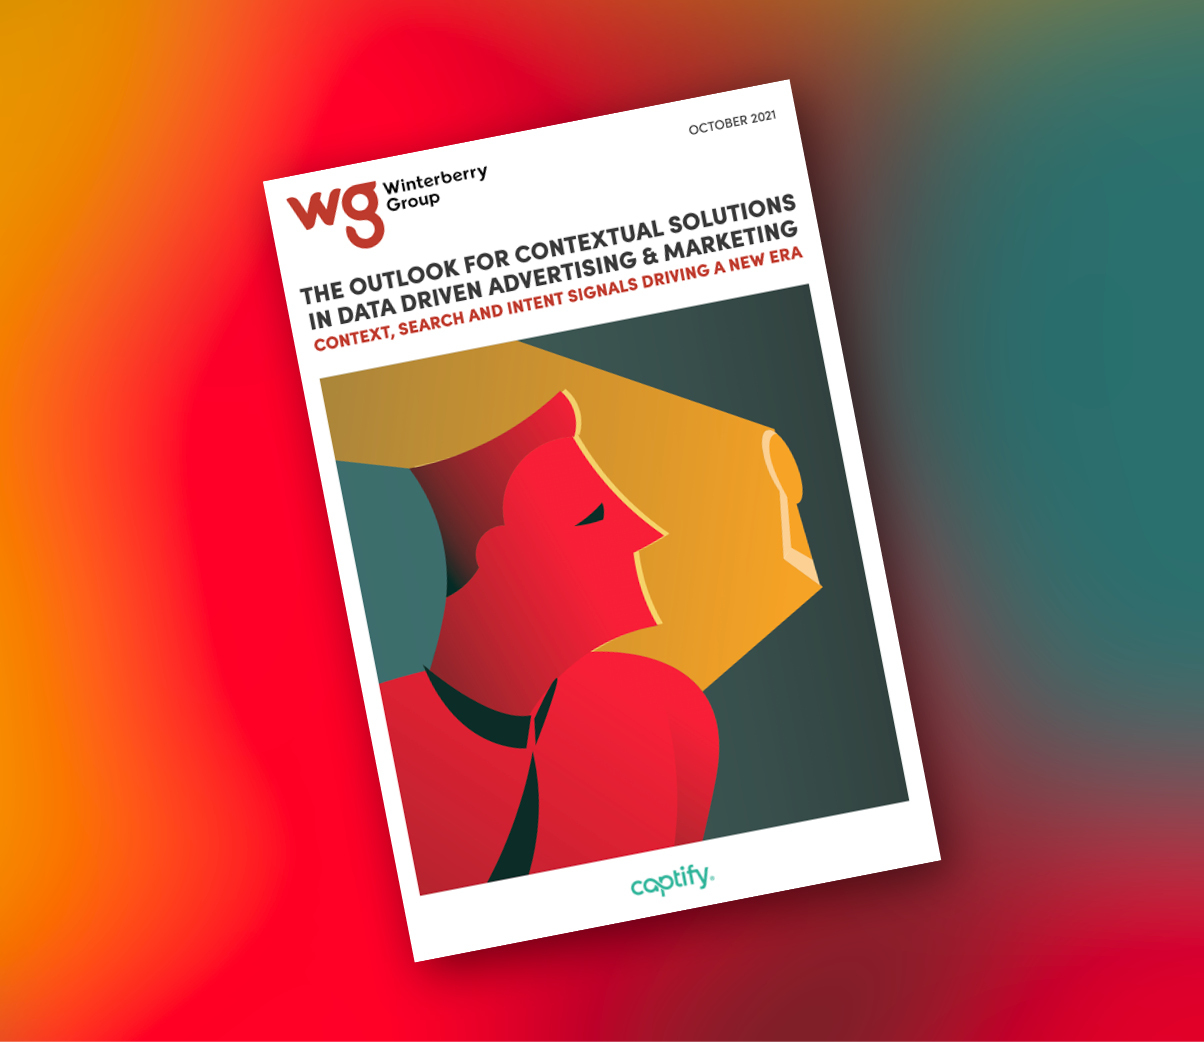 Contextual Targeting Slated for a Revival in Today's Evolving Advertising and Media Landscape; New Winterberry Group Research Has the Context